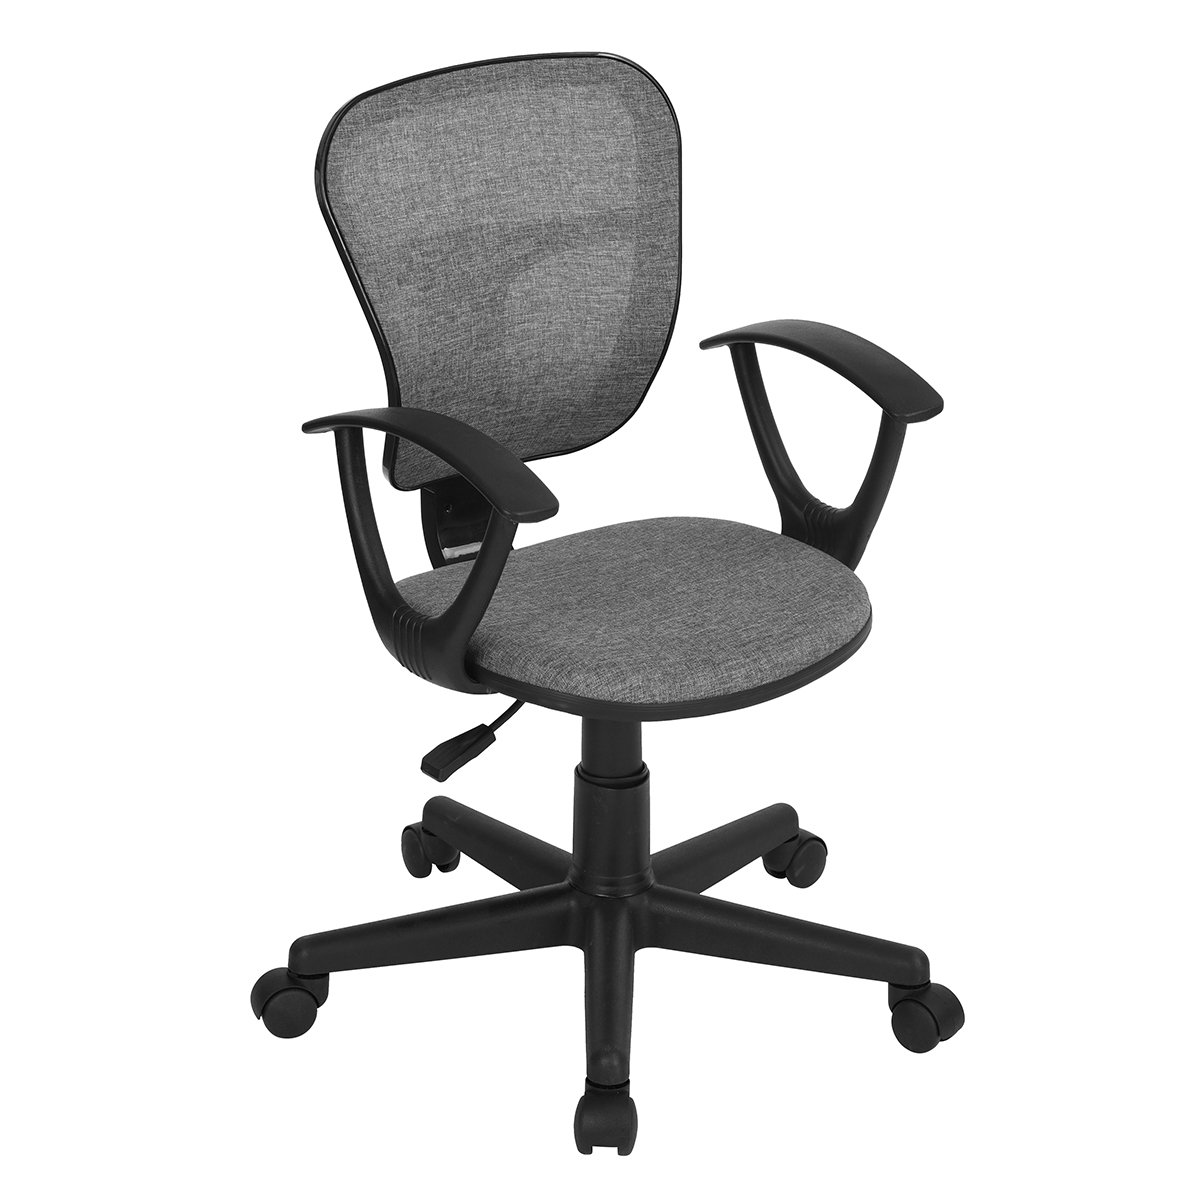 PexFix Mid-Back Home Office Chair with Armrests, Adjustable Height Ergonomic Chair Study Desk Chair for Students Teens Children Computer Gaming Chair – Grey